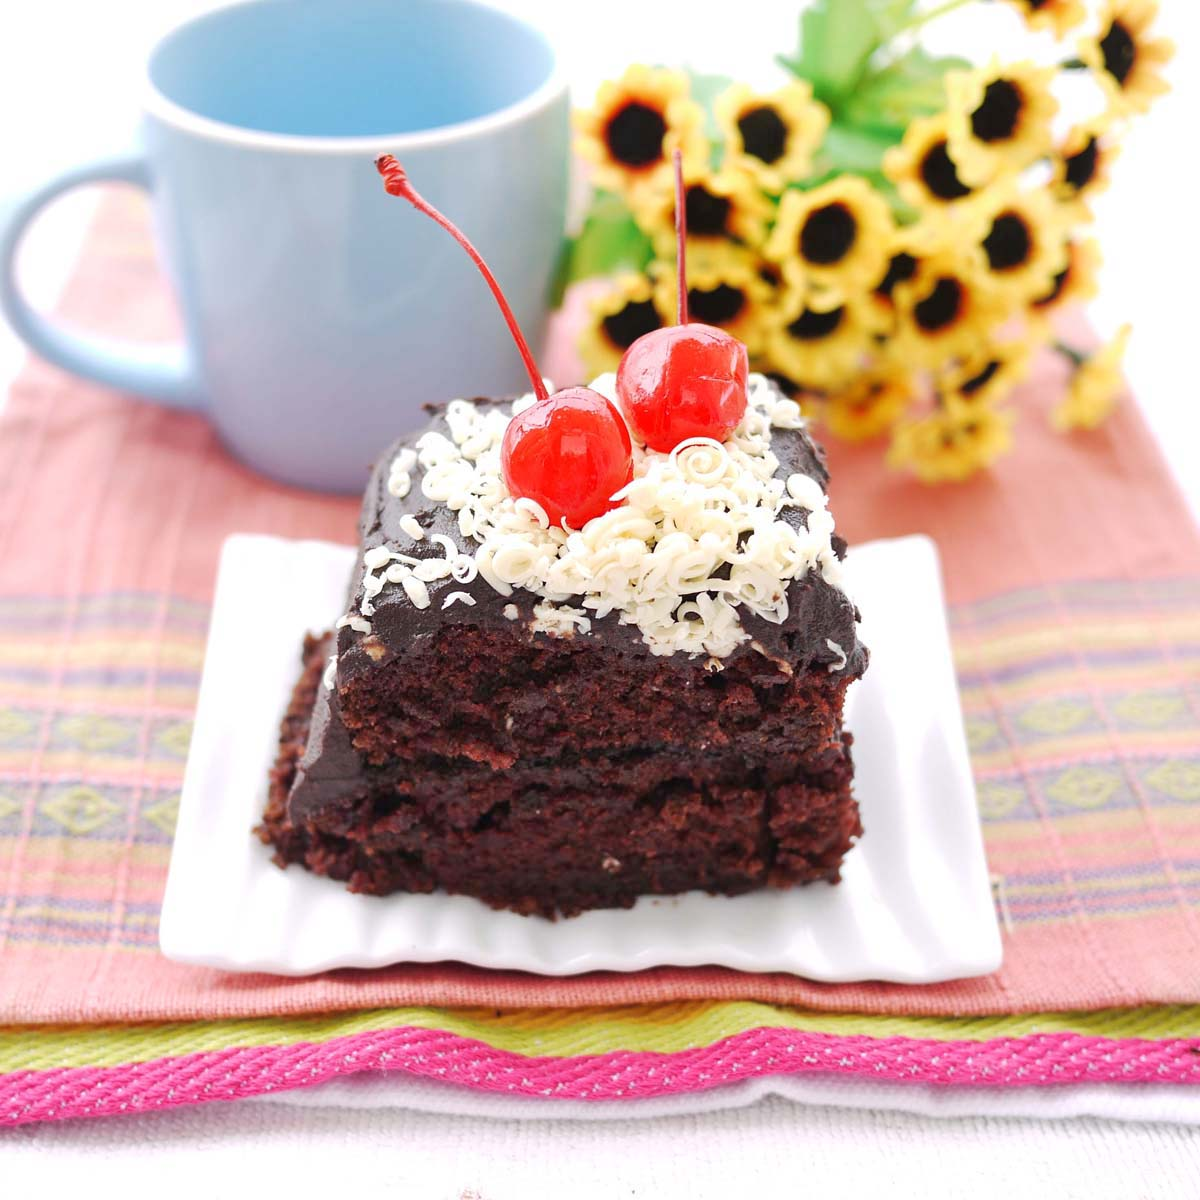 Chocolate Sheet Cake & Sour Cream Chocolate Frosting